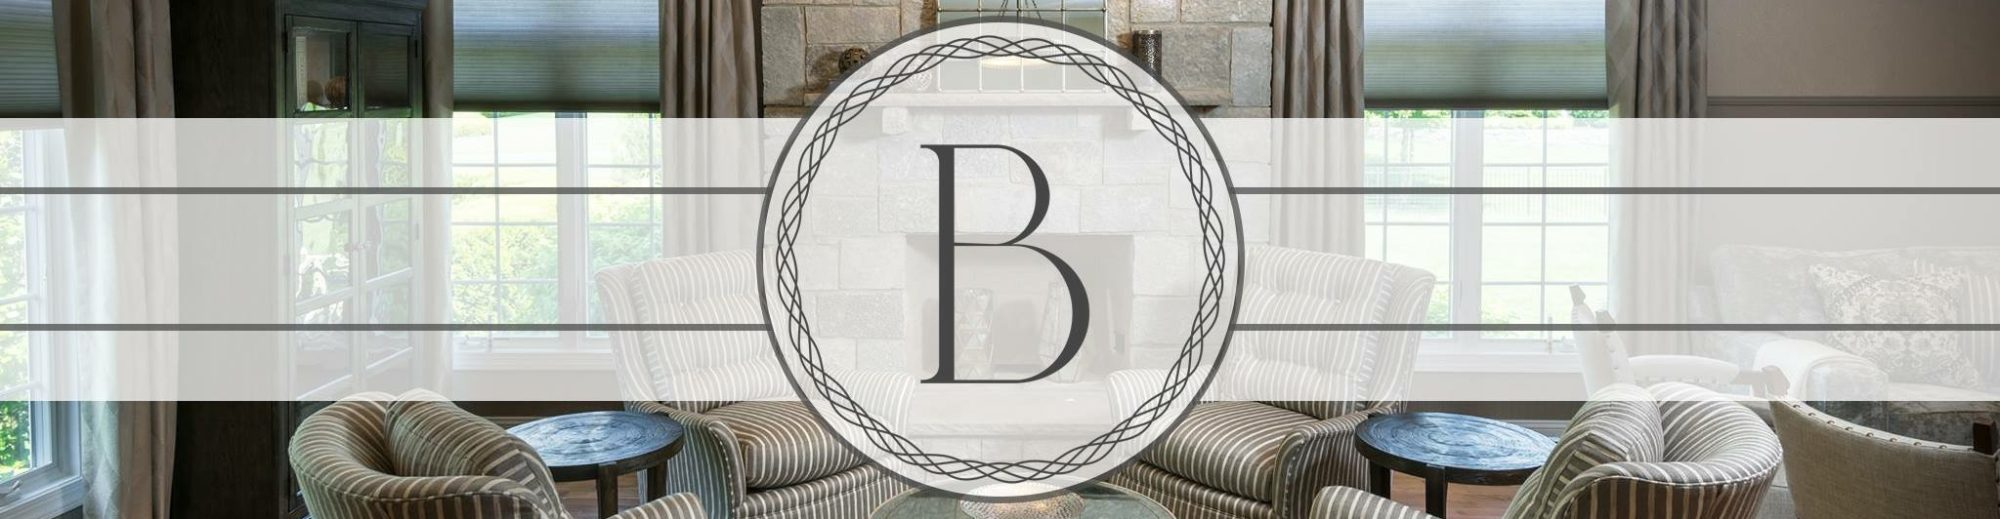 Interior Decorating Blog | Bella B Home